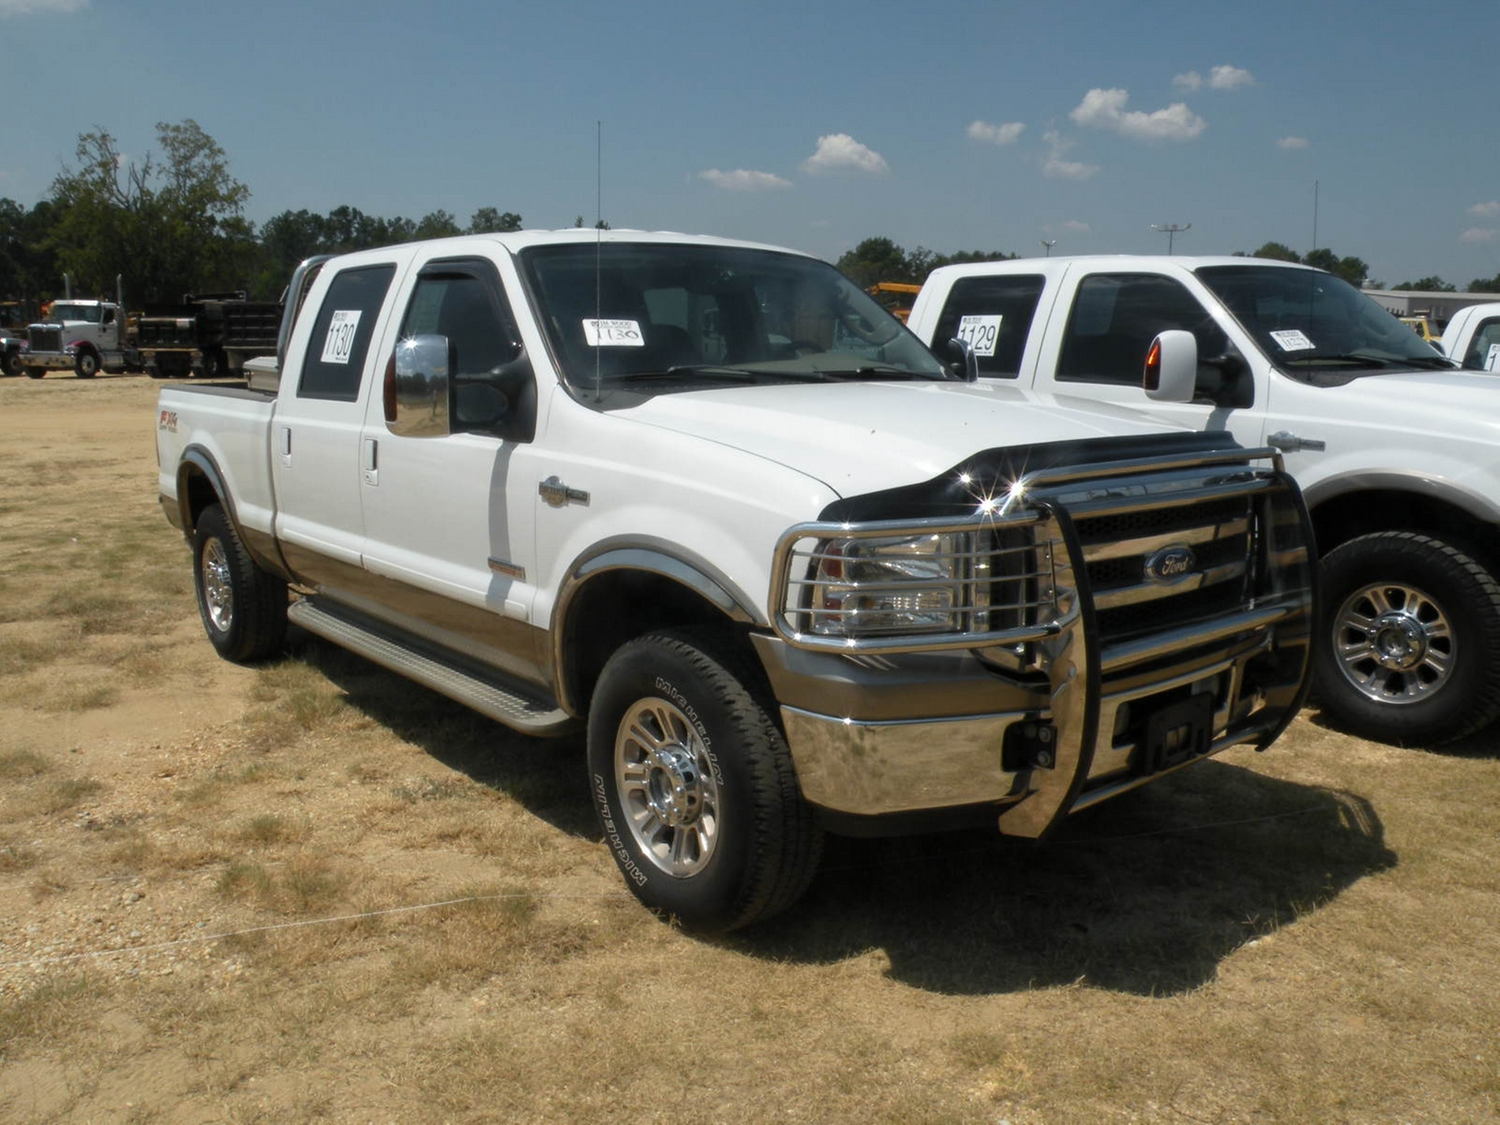 2005 ford f250 king ranch 4x4 crewcab pickup j m wood auction company inc. Black Bedroom Furniture Sets. Home Design Ideas